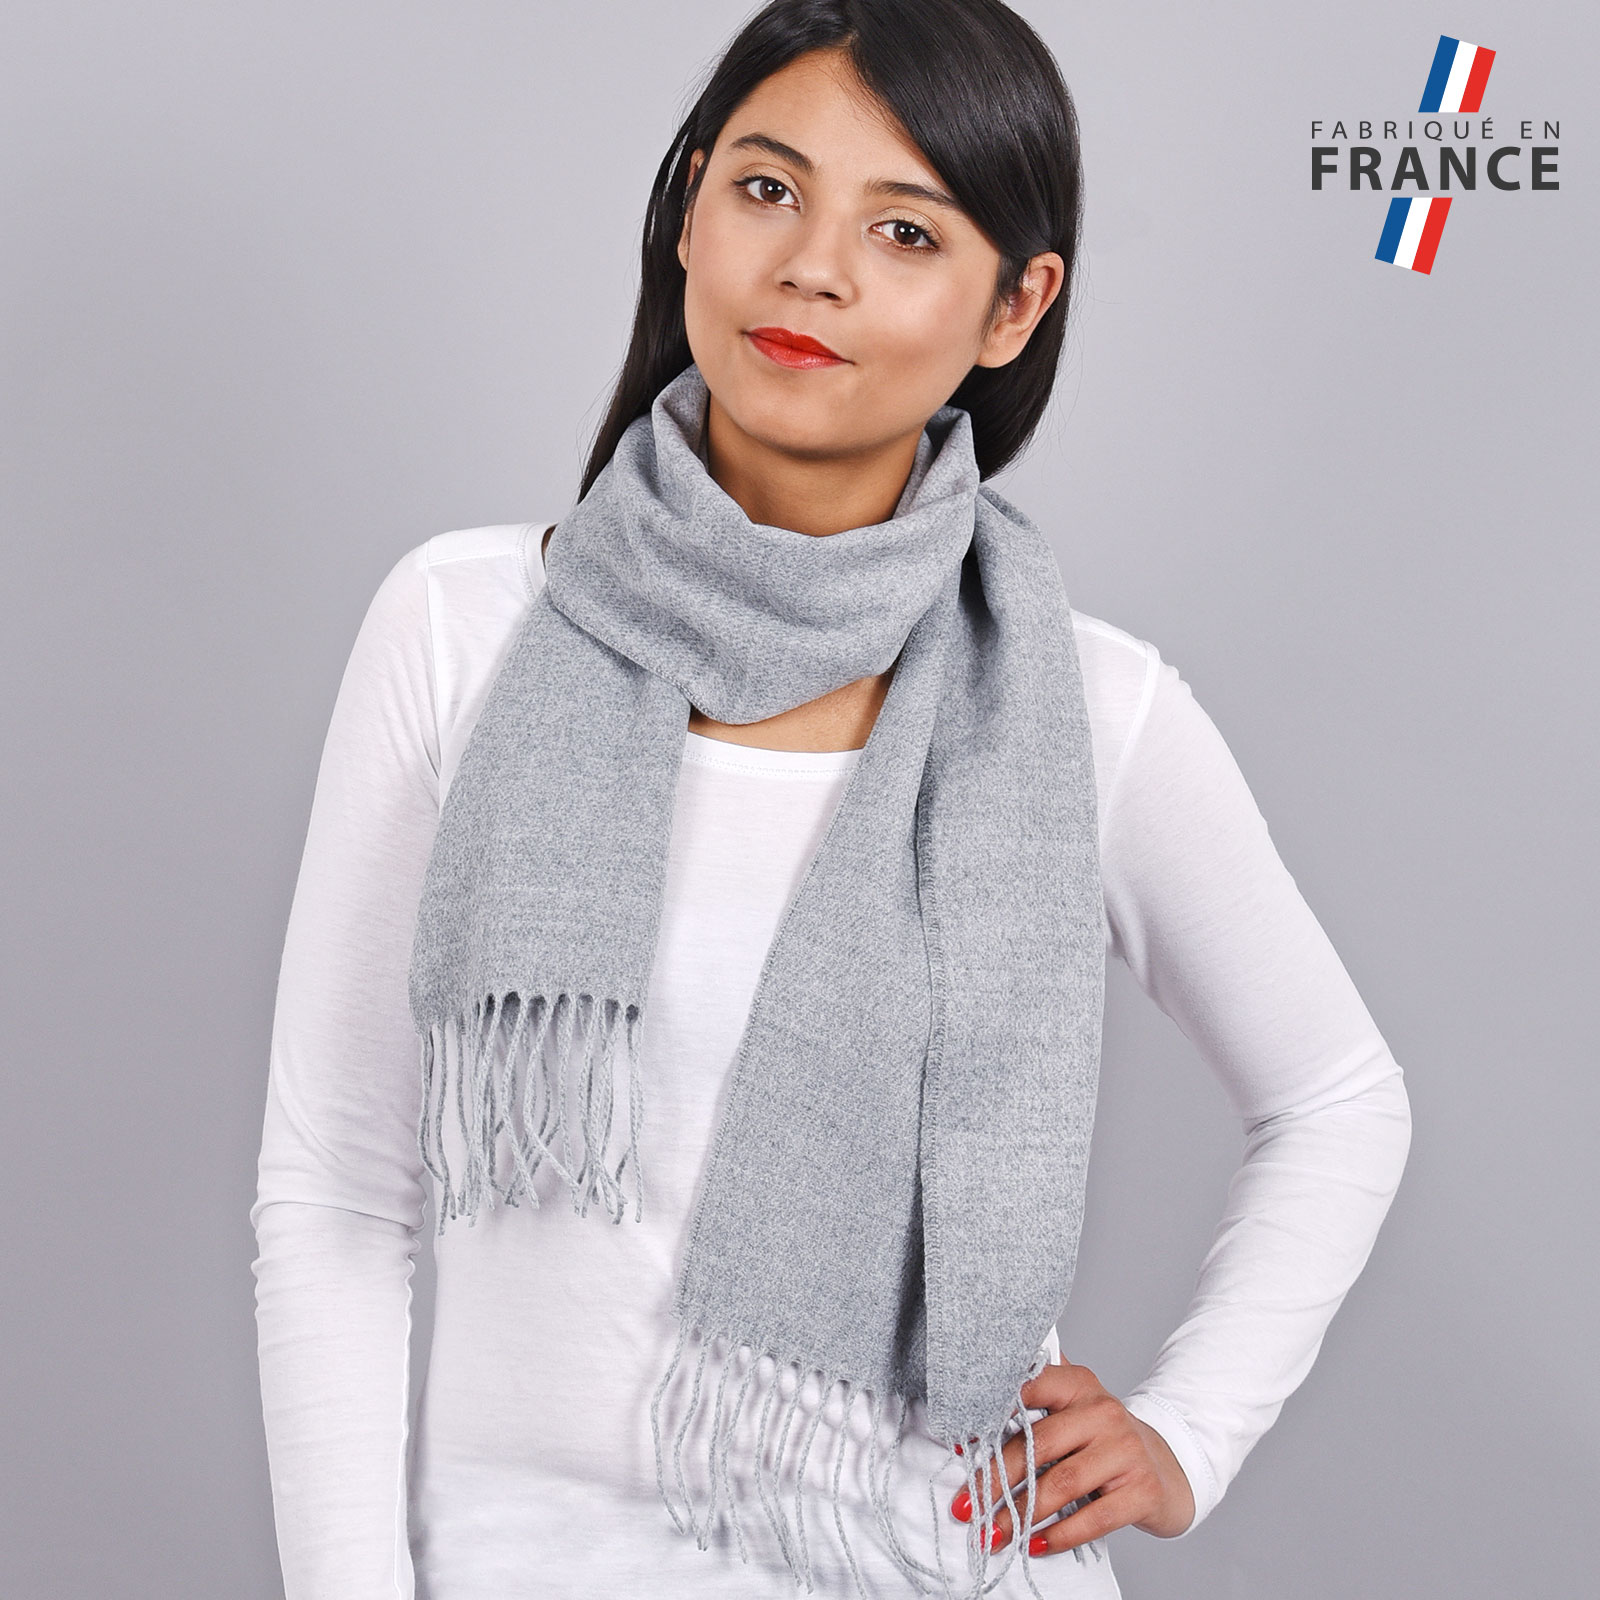 AT-03232-VF16-LB_FR-echarpe-a-franges-grise-fabrication-francaise